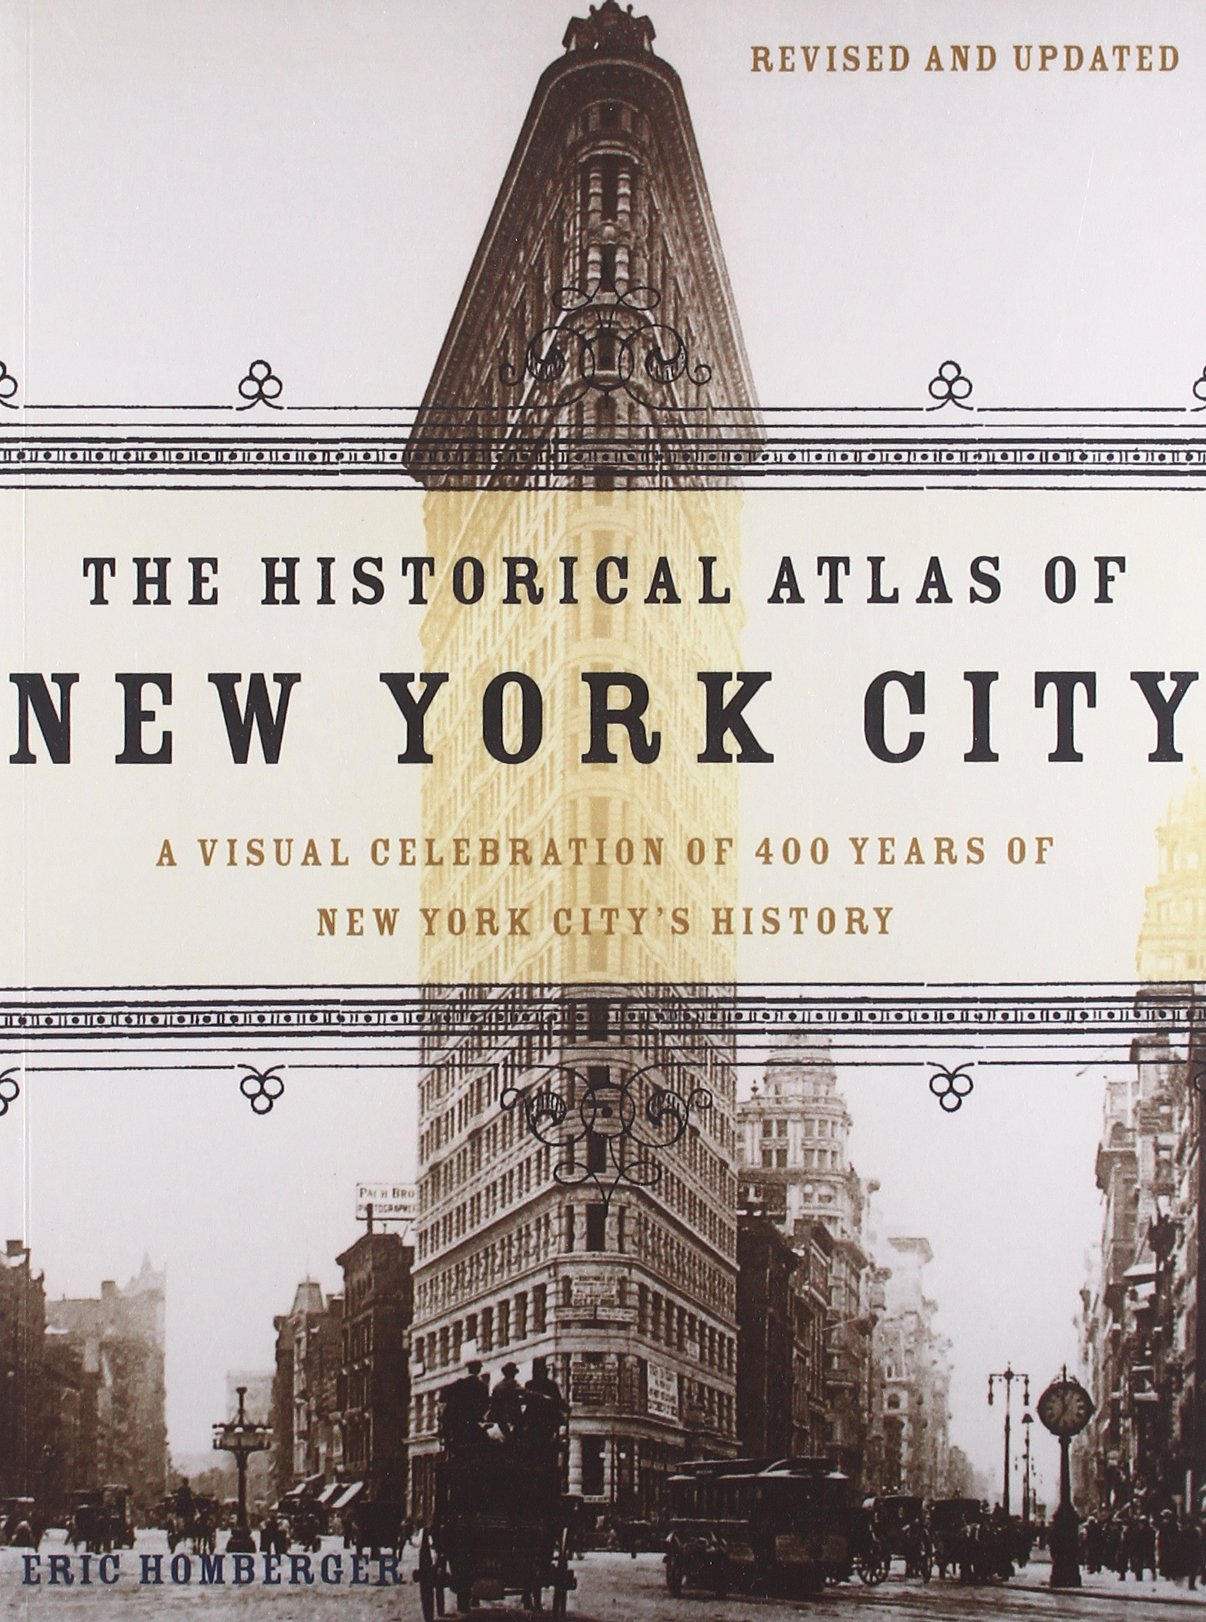 The Historical Atlas of New York City: A Visual Celebration of 400 Years of New York City's History-click the link below to learn more about this book.